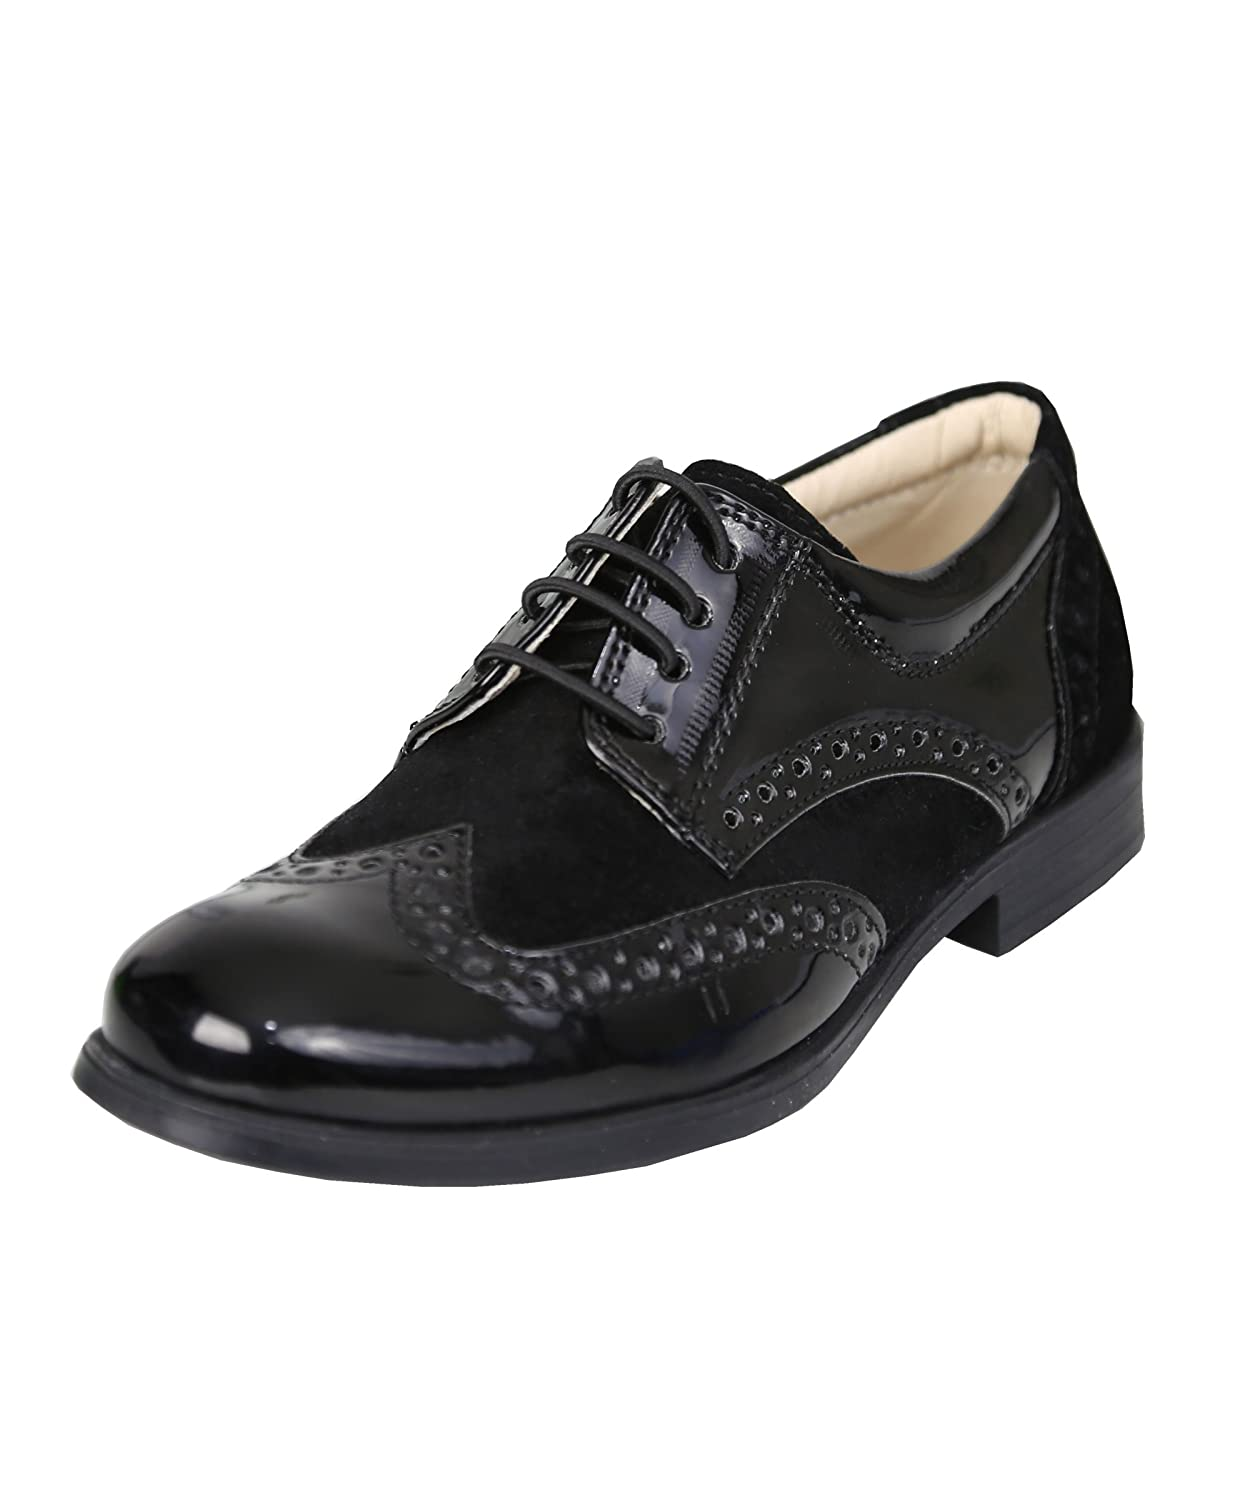 Boys Patent Suede Brogues Formal Wedding Oxford Shoes